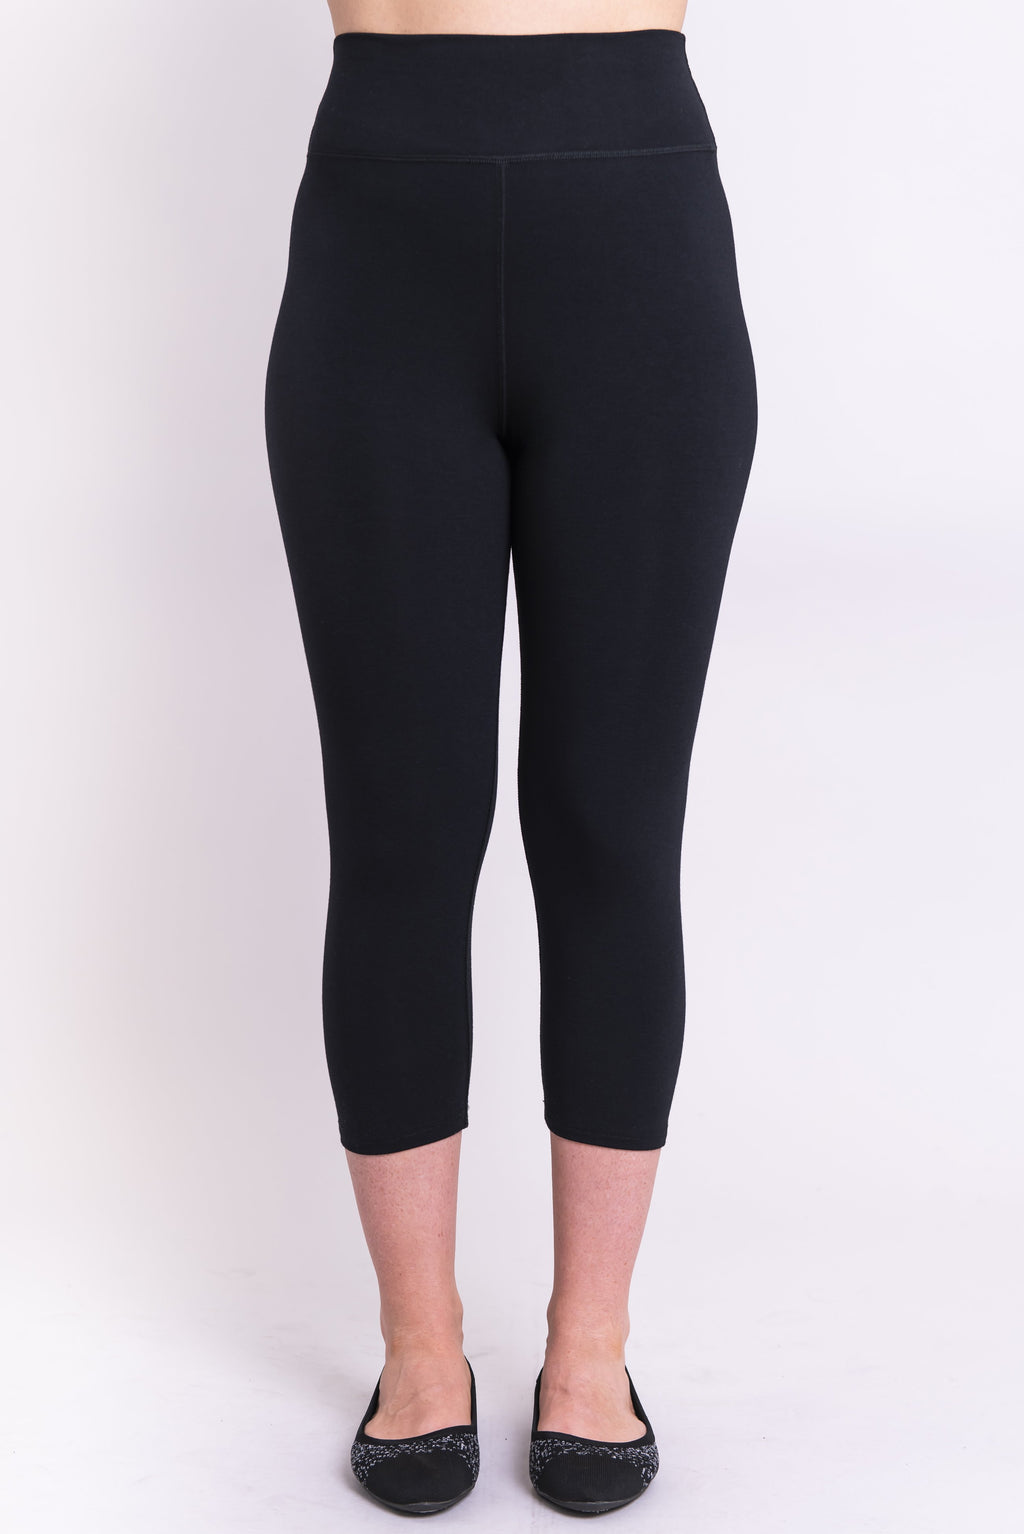 Riley Capri, Black, Bamboo - Blue Sky Clothing Co